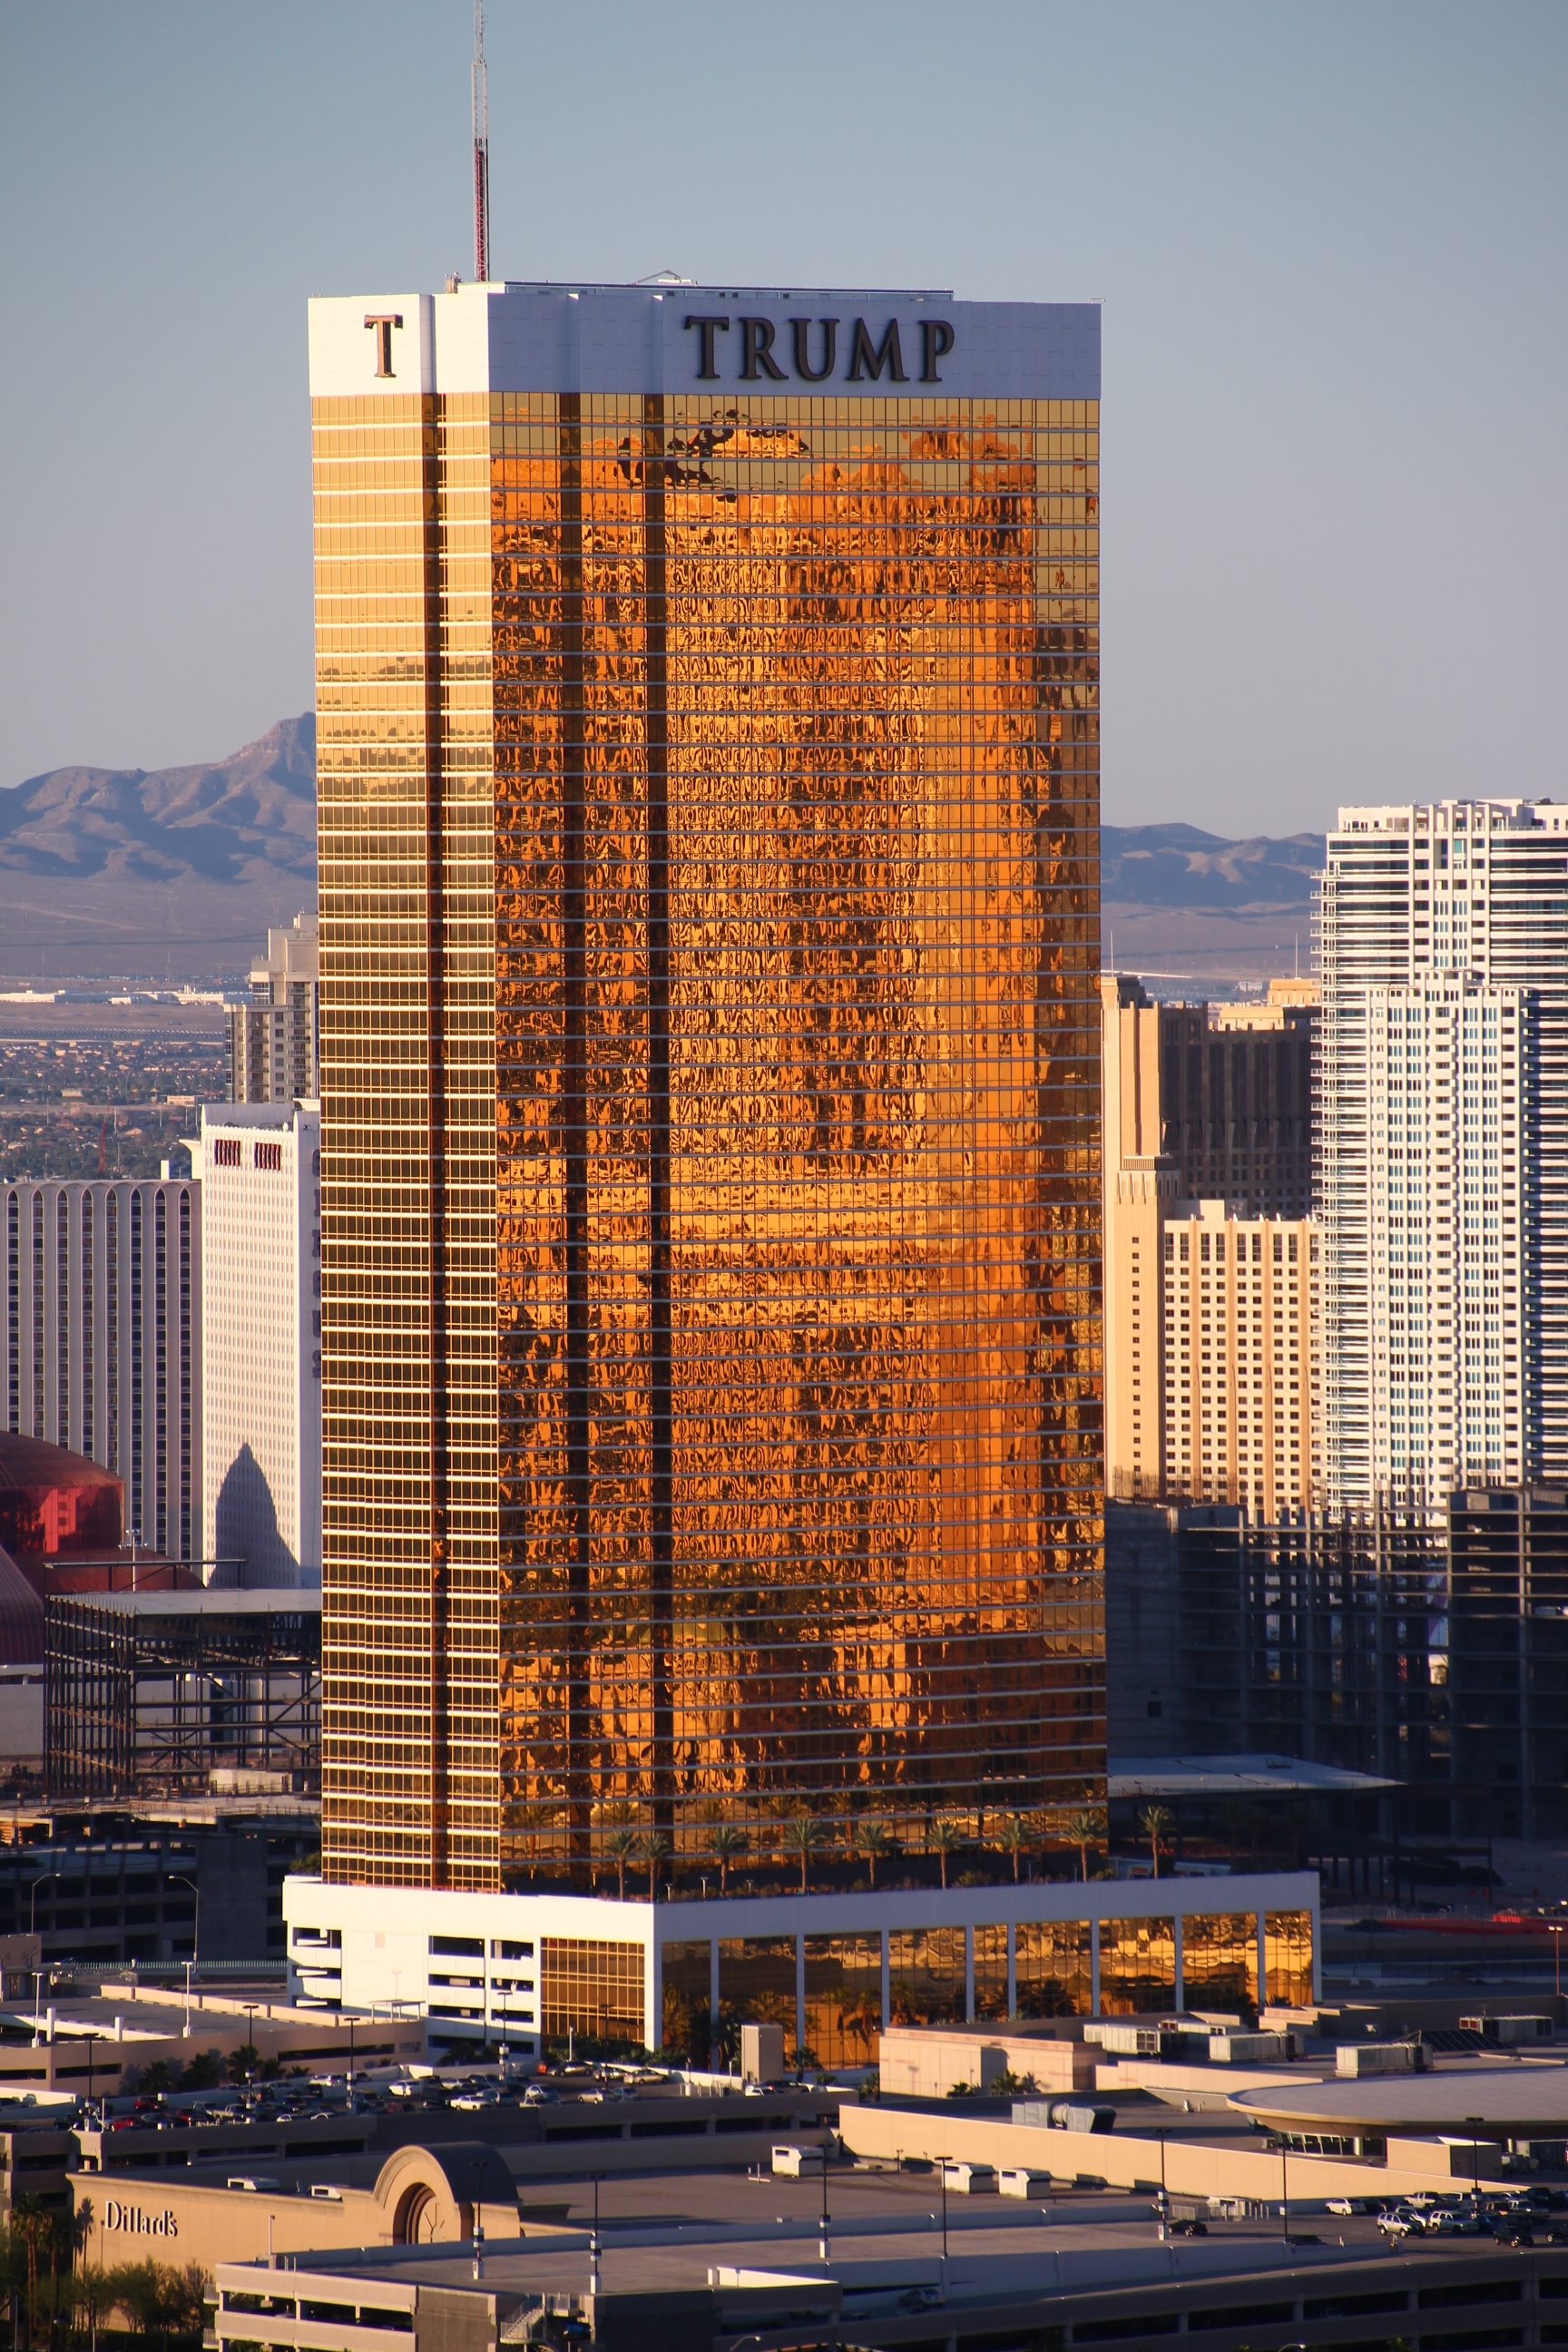 Trump Hotel Las Vegas whose exterior windows are gilded with 24-carat gold[173]